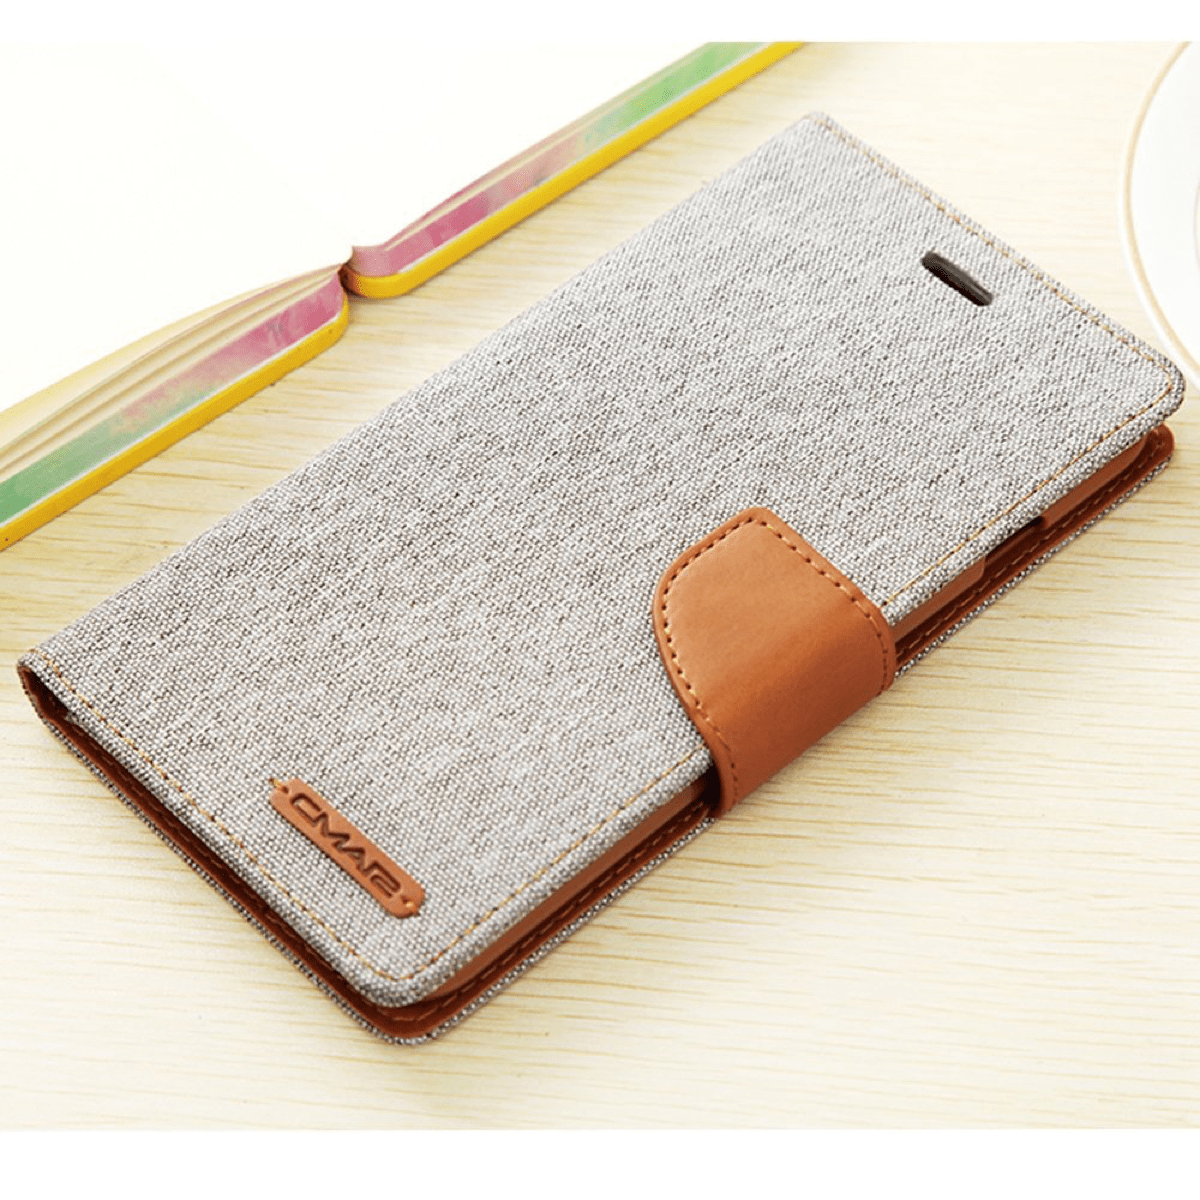 The Aroko canvas wallet case in our list of Mother's Day iPhone cases.